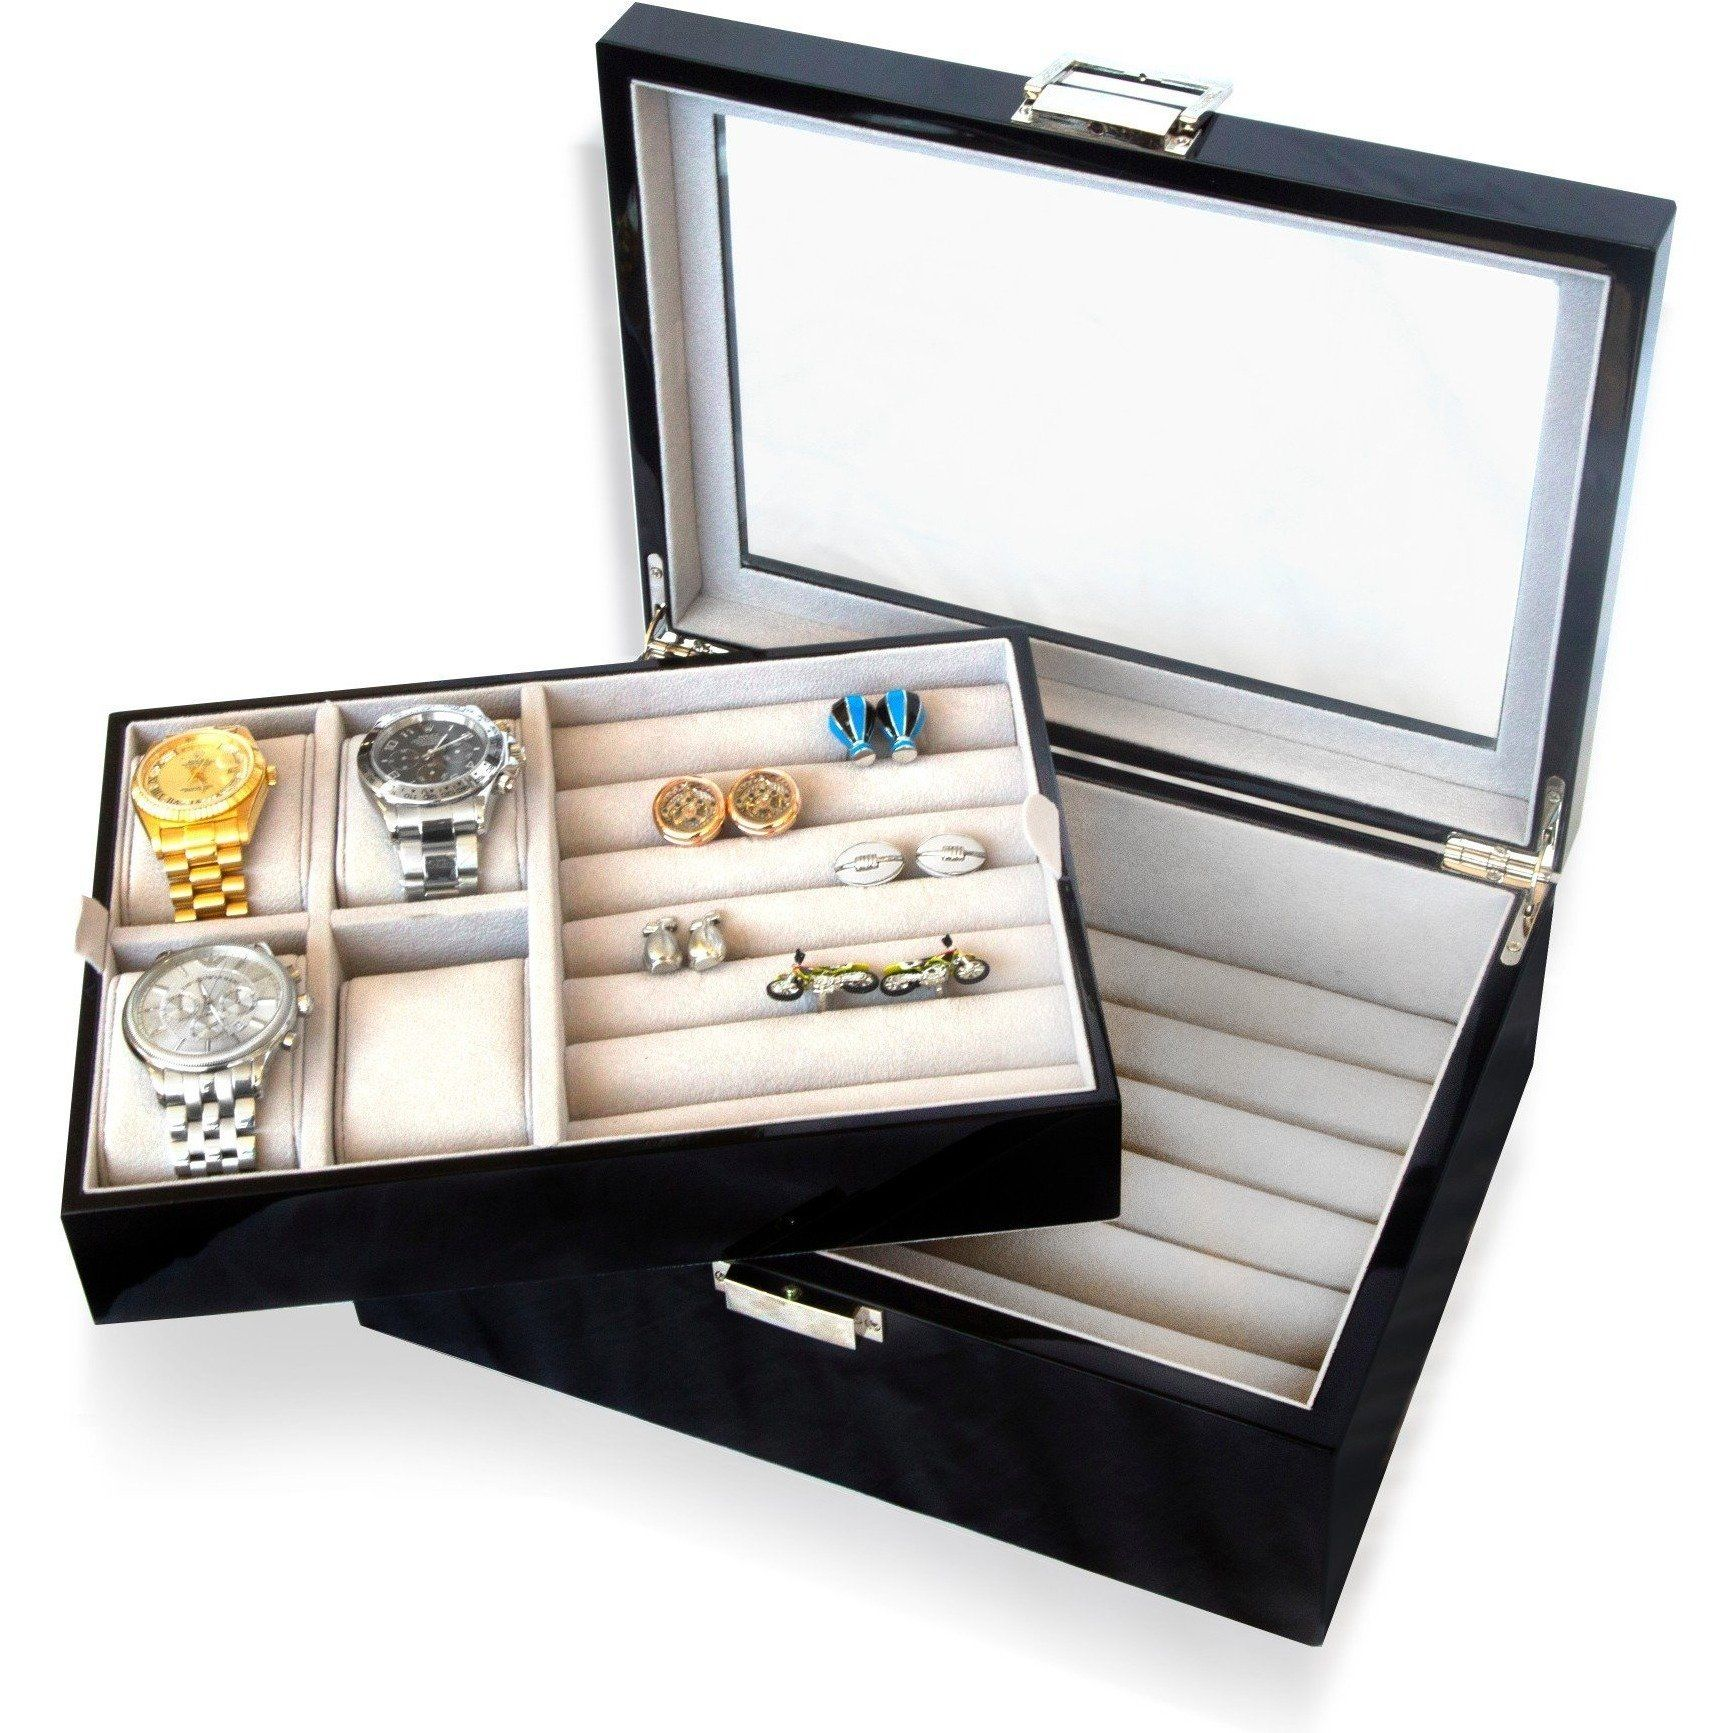 50 Pair Cufflink and Watch Box Double Decker Black Clinks Australia